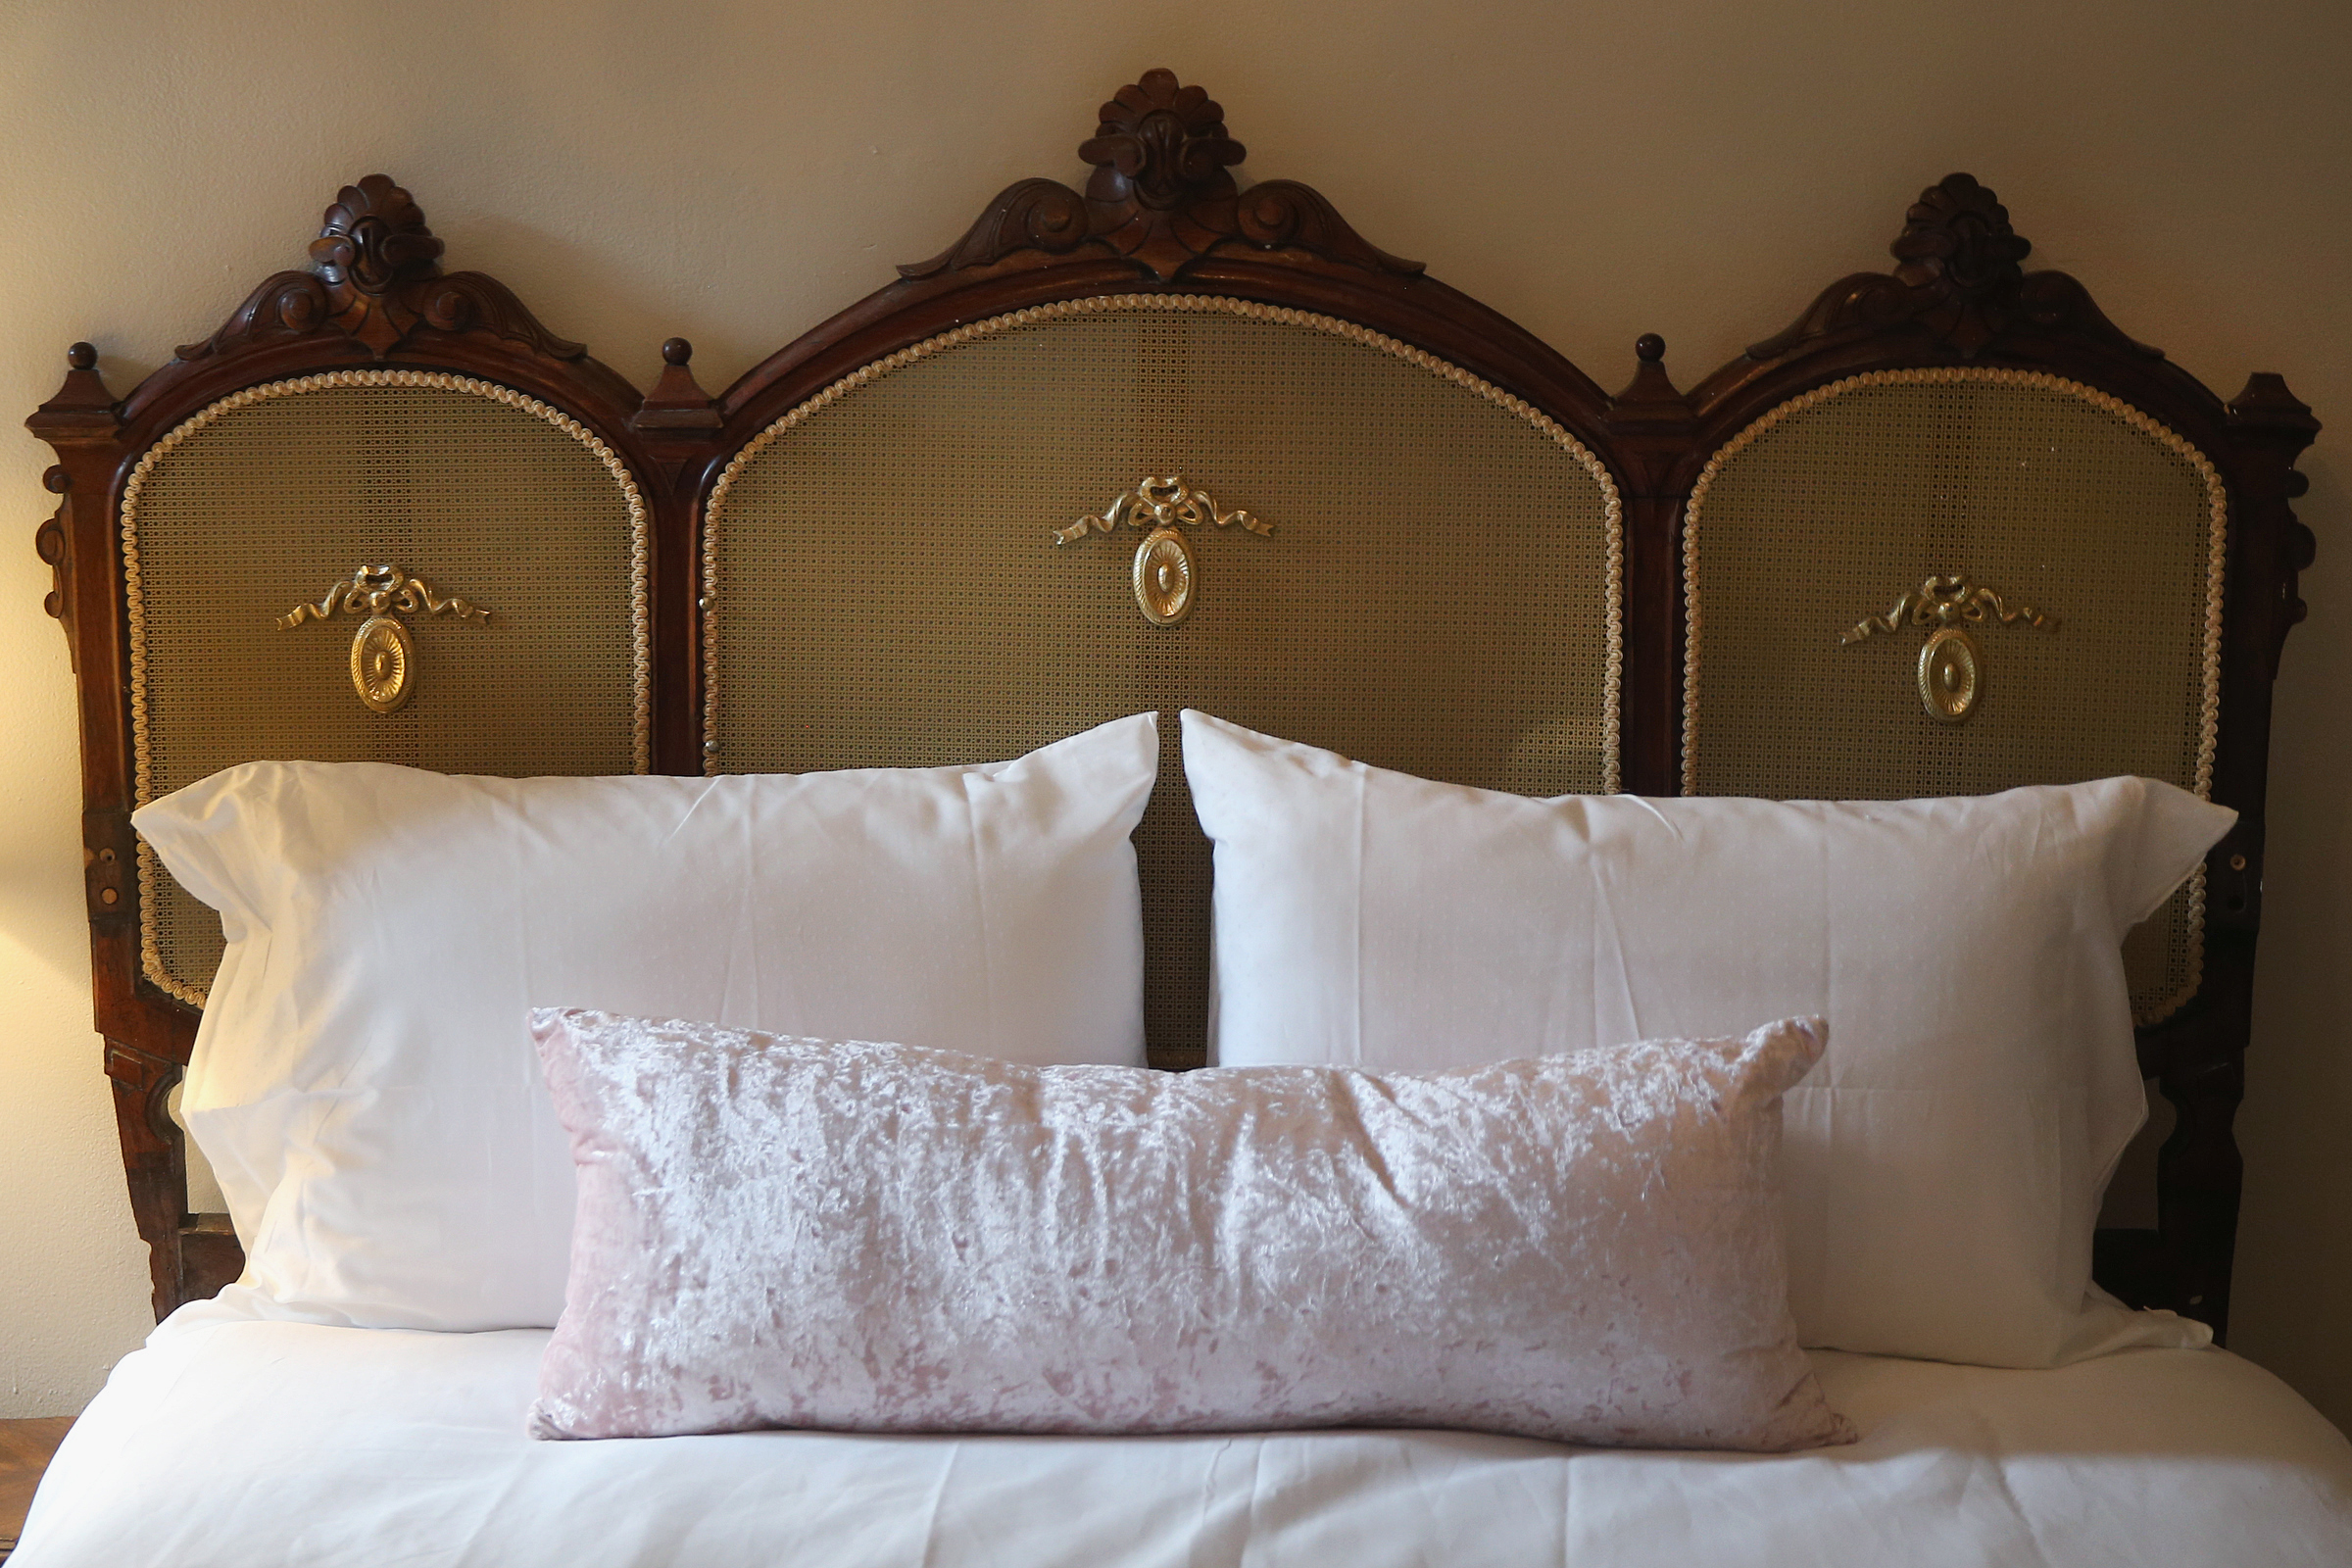 A bedroom is pictured during an open house at the new Akwaaba Bed and Breakfast in West Philadelphia on Wednesday, July 4, 2018. The Philadelphia location is the latest addition to the bed and breakfast chain started by Monique Greenwood and her husband, Glenn Pogue. TIM TAI / Staff Photographer